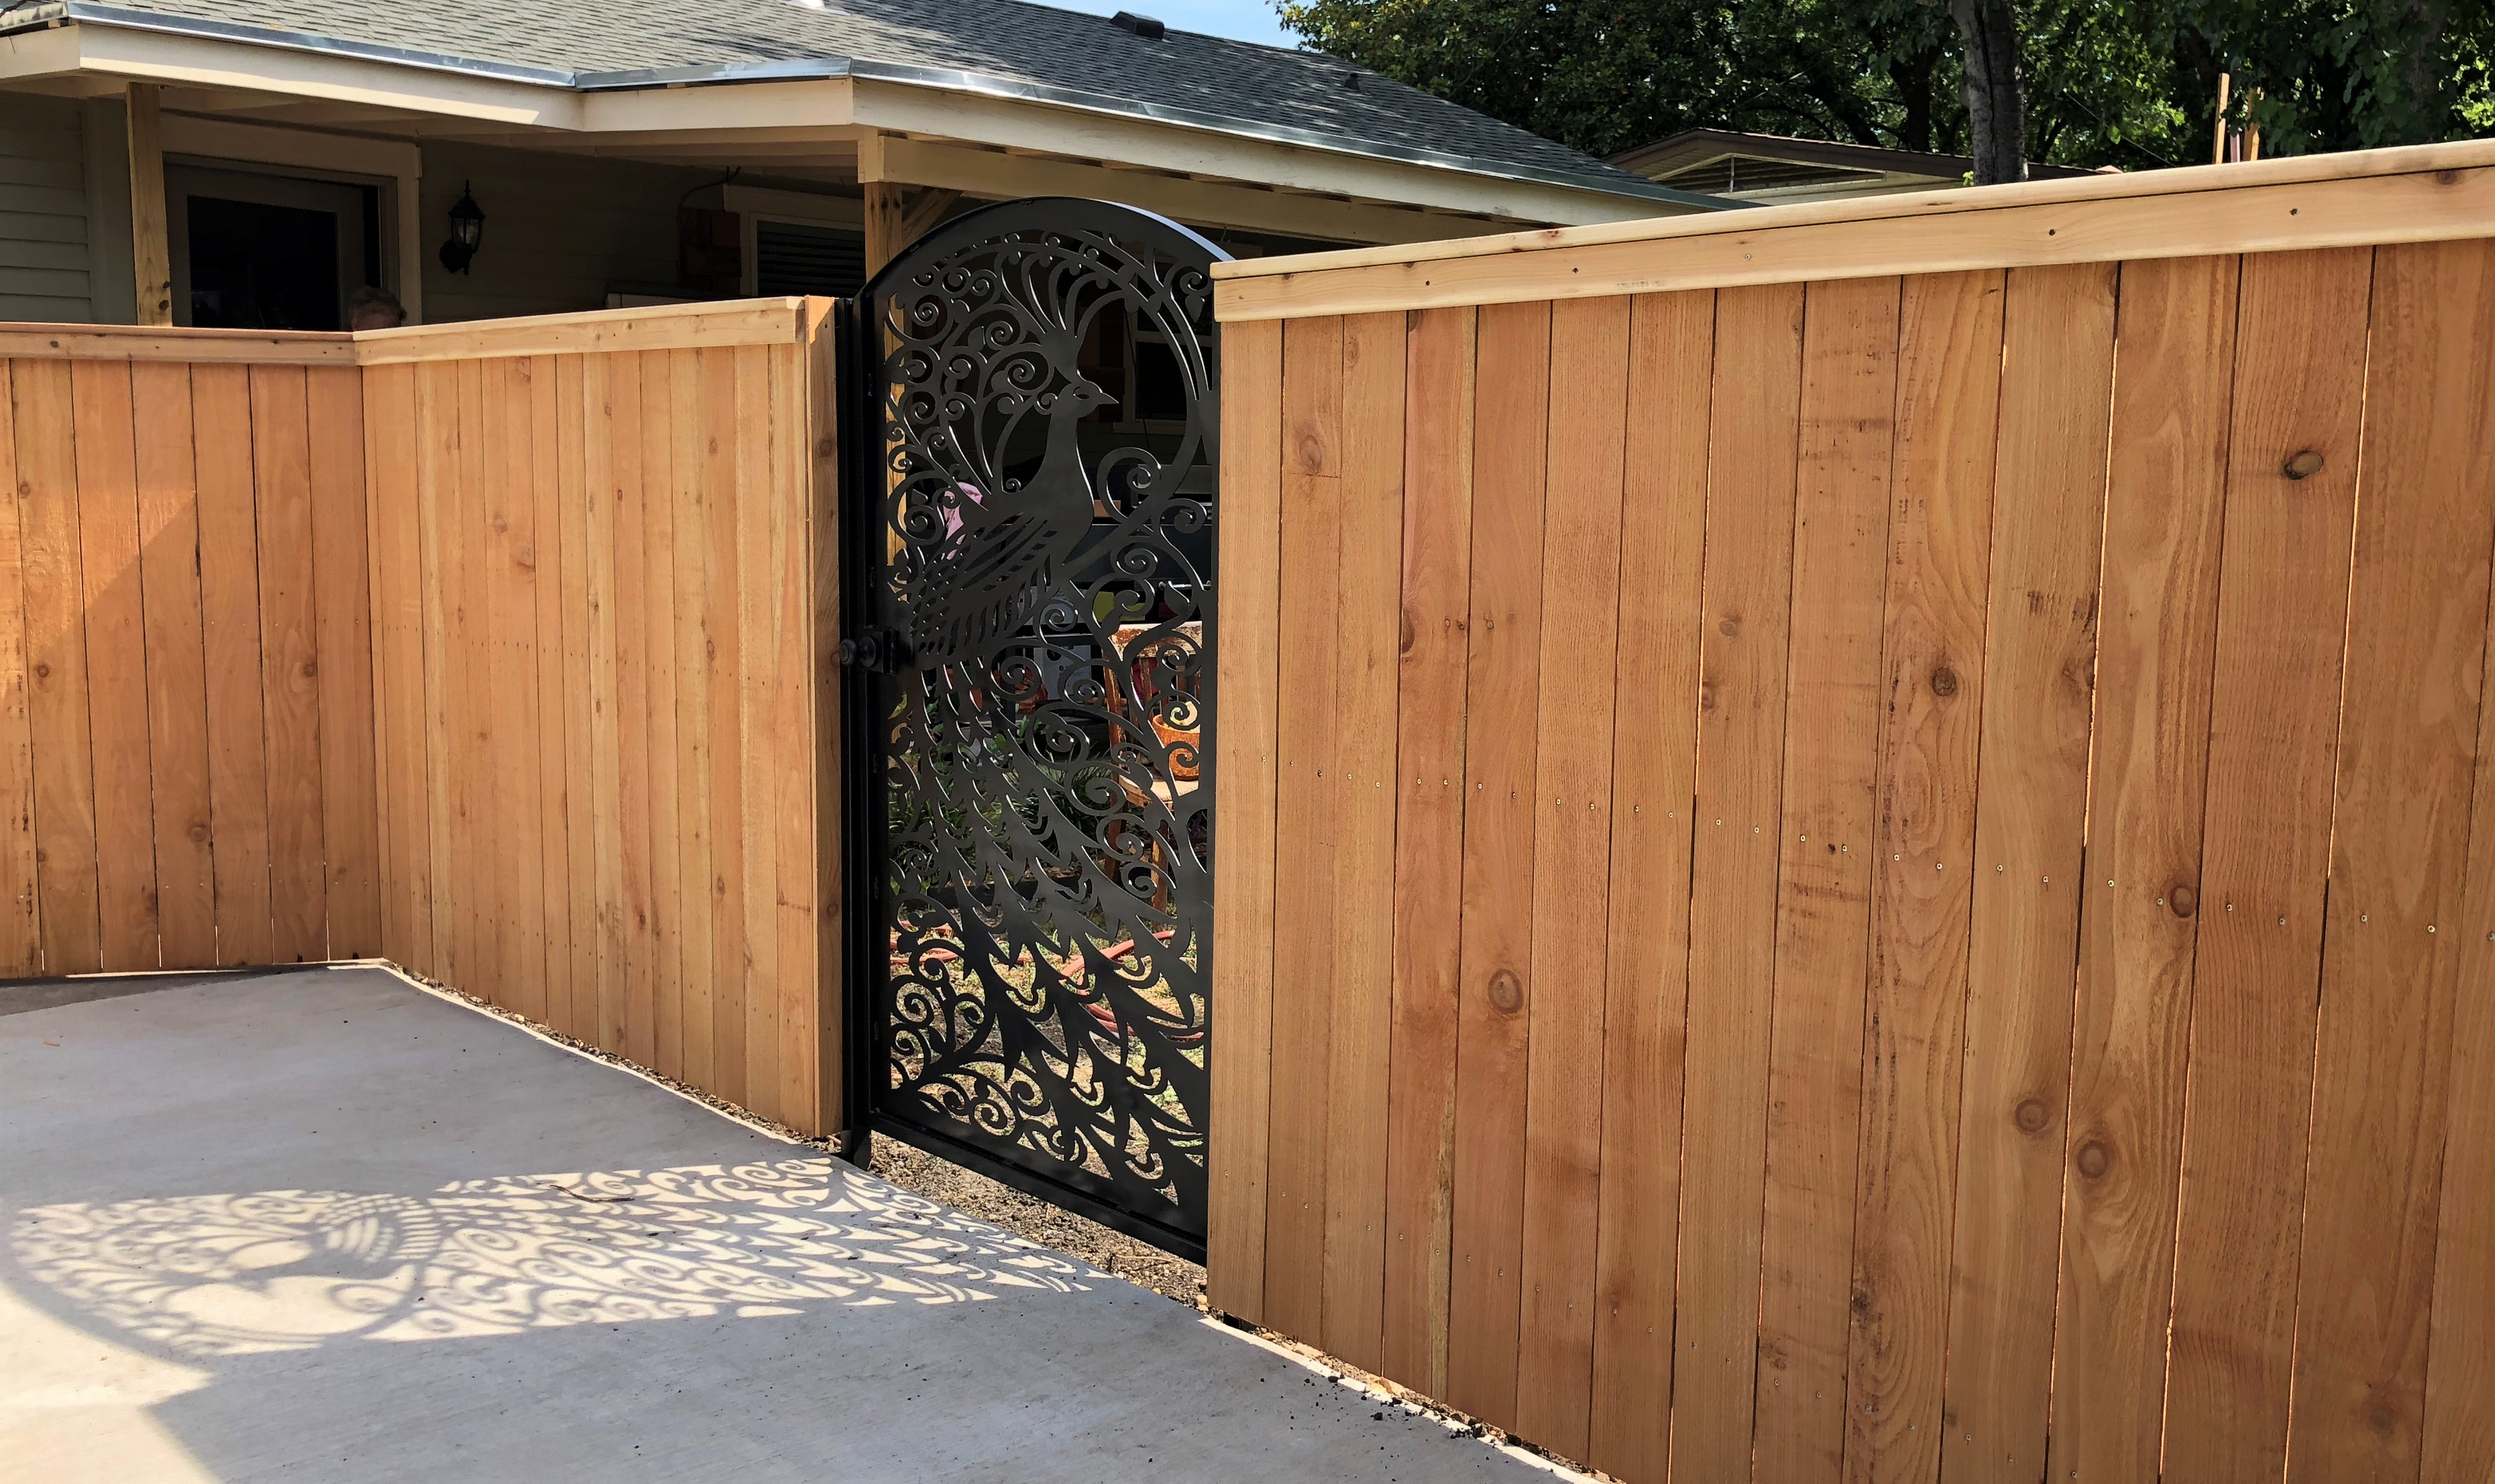 Cedar Fence w/ Peacock Walkway Gate